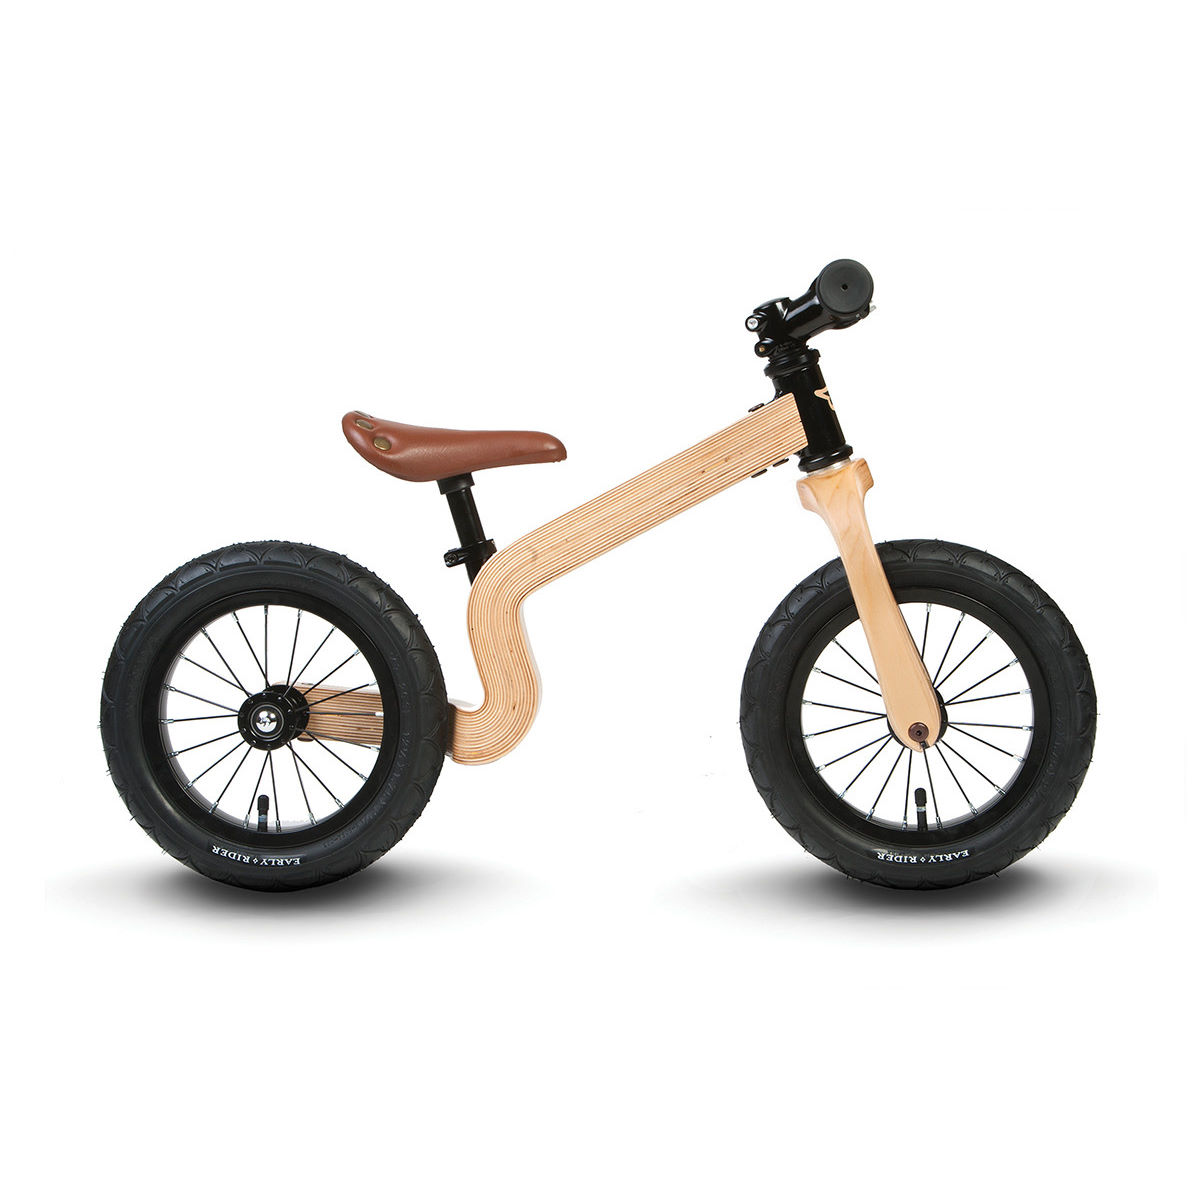 Draisienne Early Rider Bonsai (12 pouces) - 12'' Wheel Stock Bike Natural Birch Draisiennes 1 à 5 ans